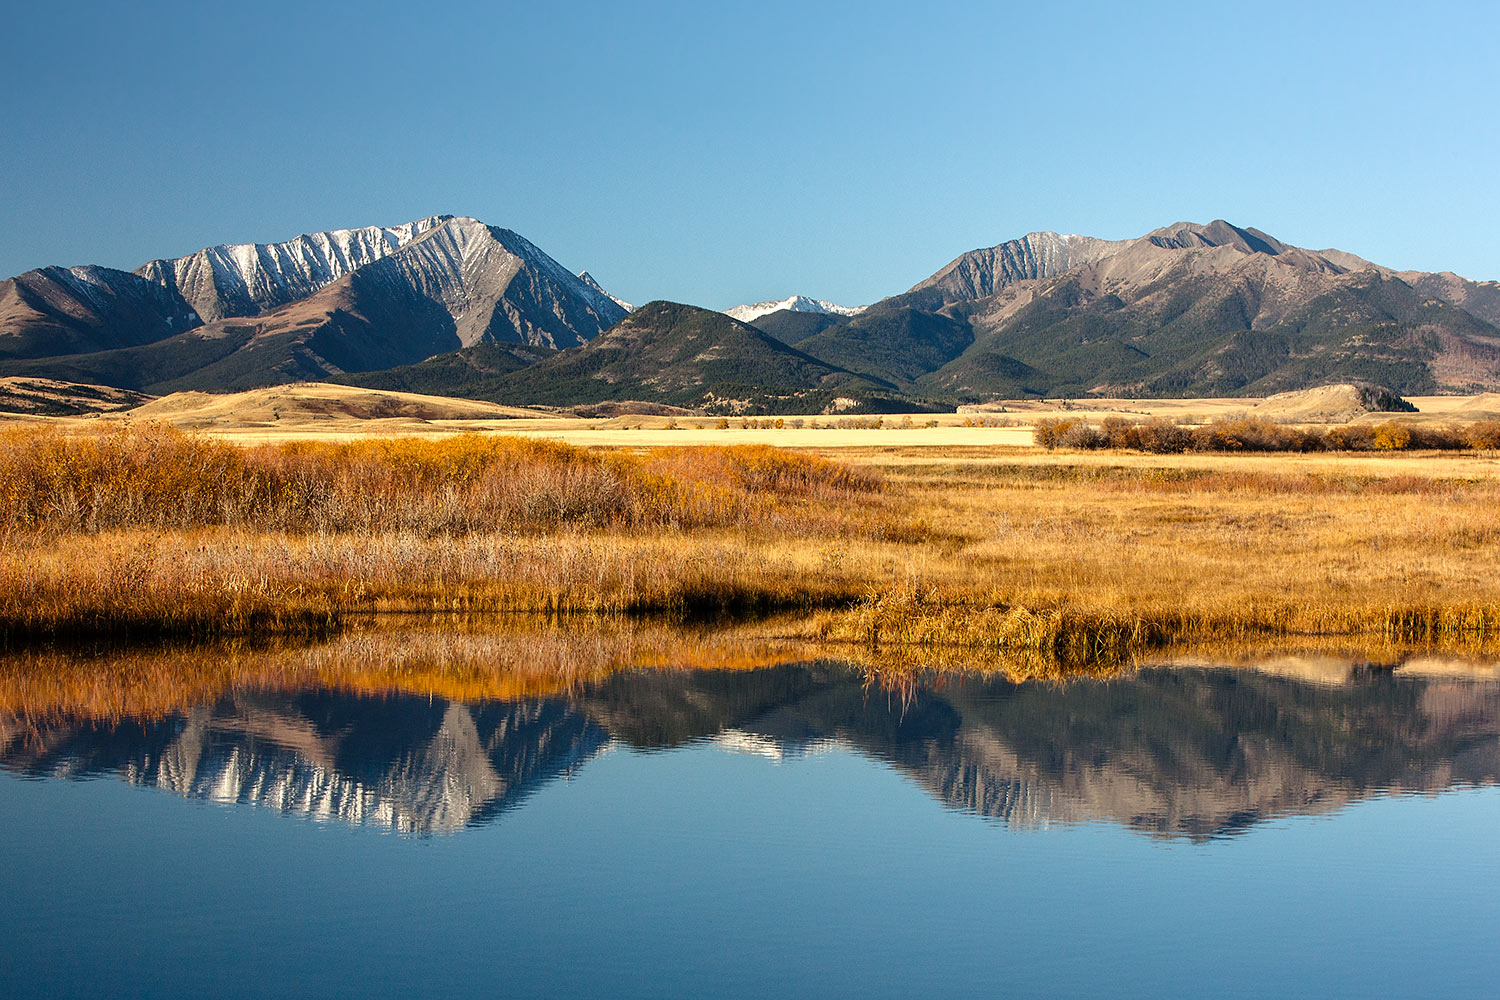 Crazy Mountains reflections near Melville, Montana.  → Buy a Print  or   License Photo